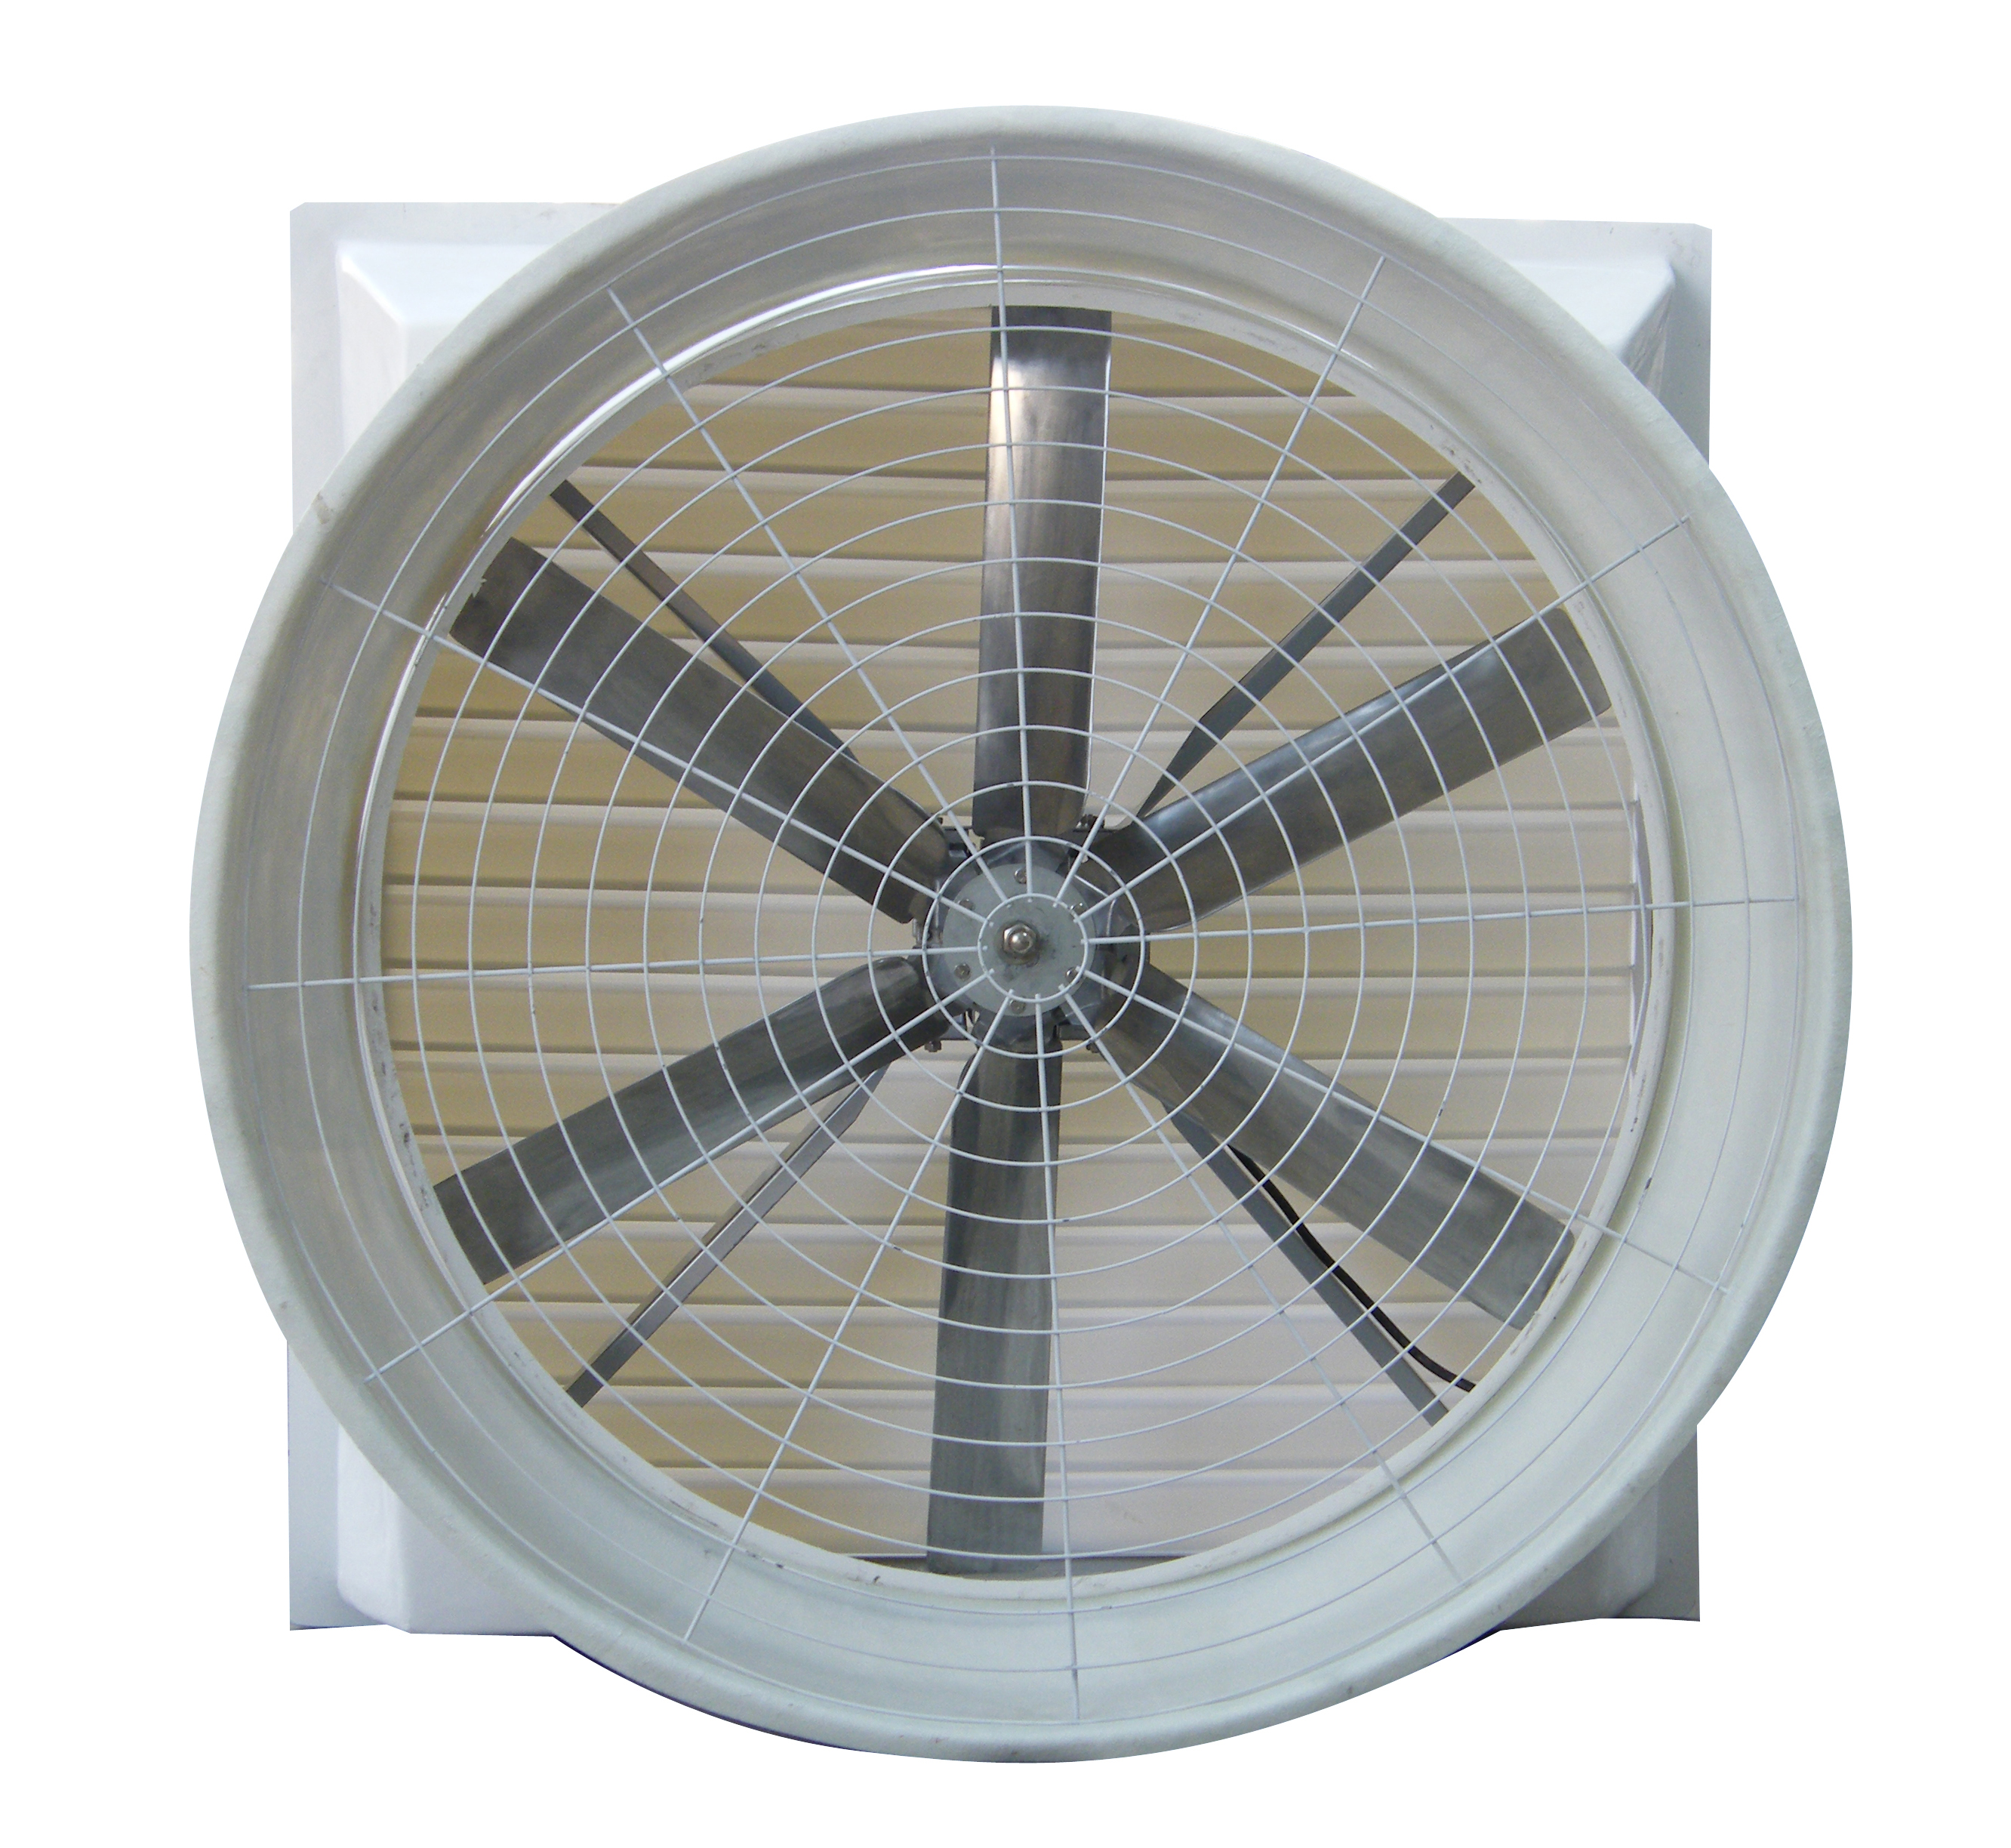 ac power room wall mounted cone restaurant exhaust fan buy cone restaurant exhaust fan wall mounted restaurant exhaust fan ac power room restaurant